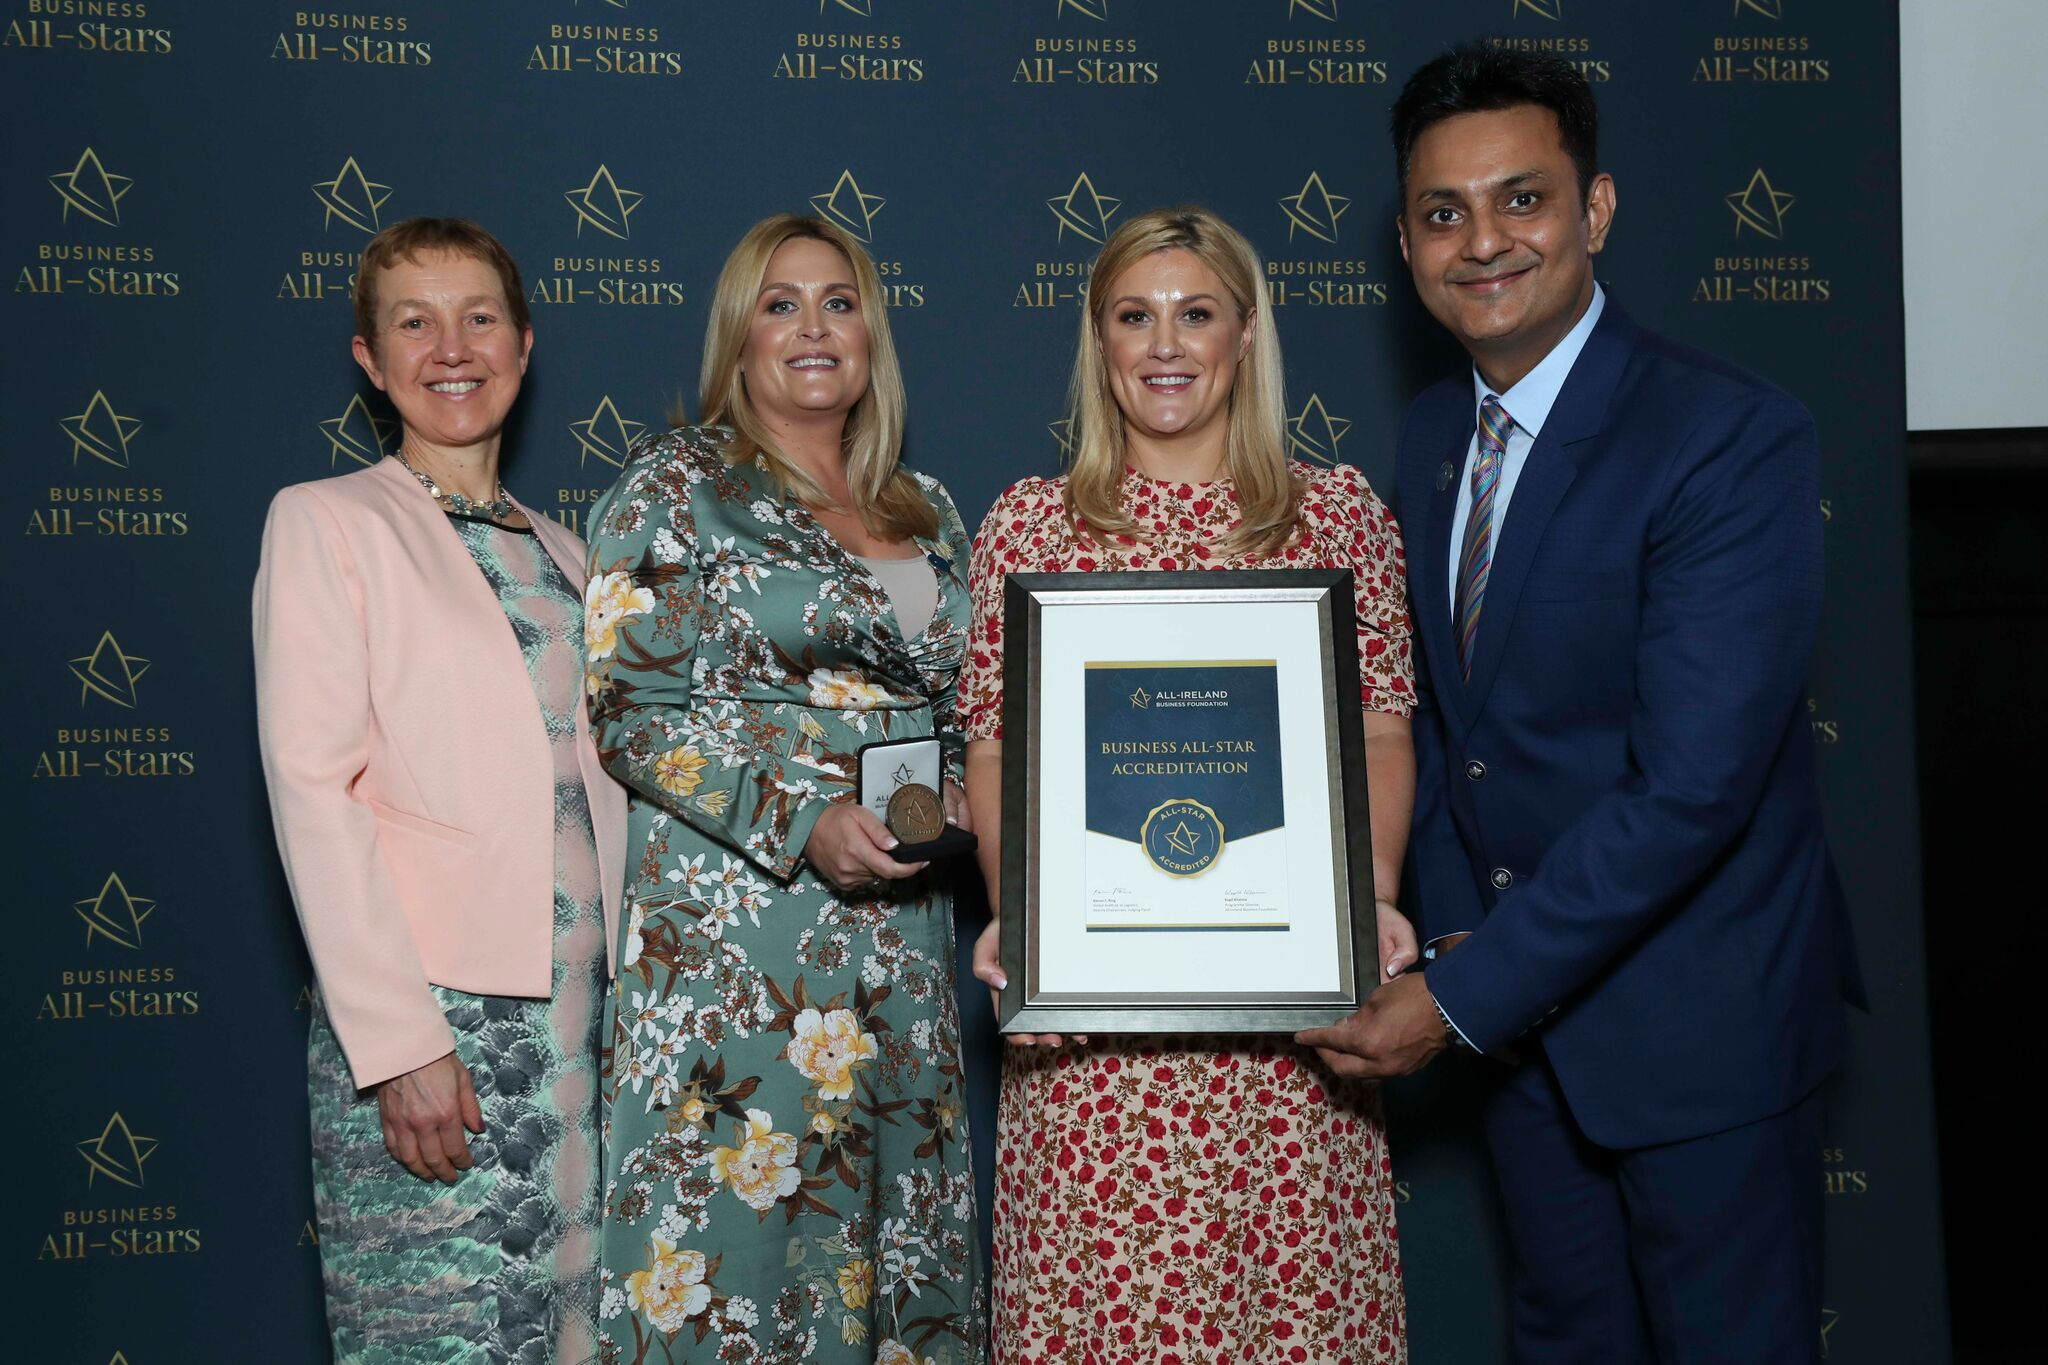 Aishling Naughton & Michelle Daly, P&G Cards receiving Business All-Star Accreditation at Croke Park from Dr Briga Hynes, Kemmy Business School University of Limerick and Kapil Khanna, MD, All-Ireland Business Foundation.